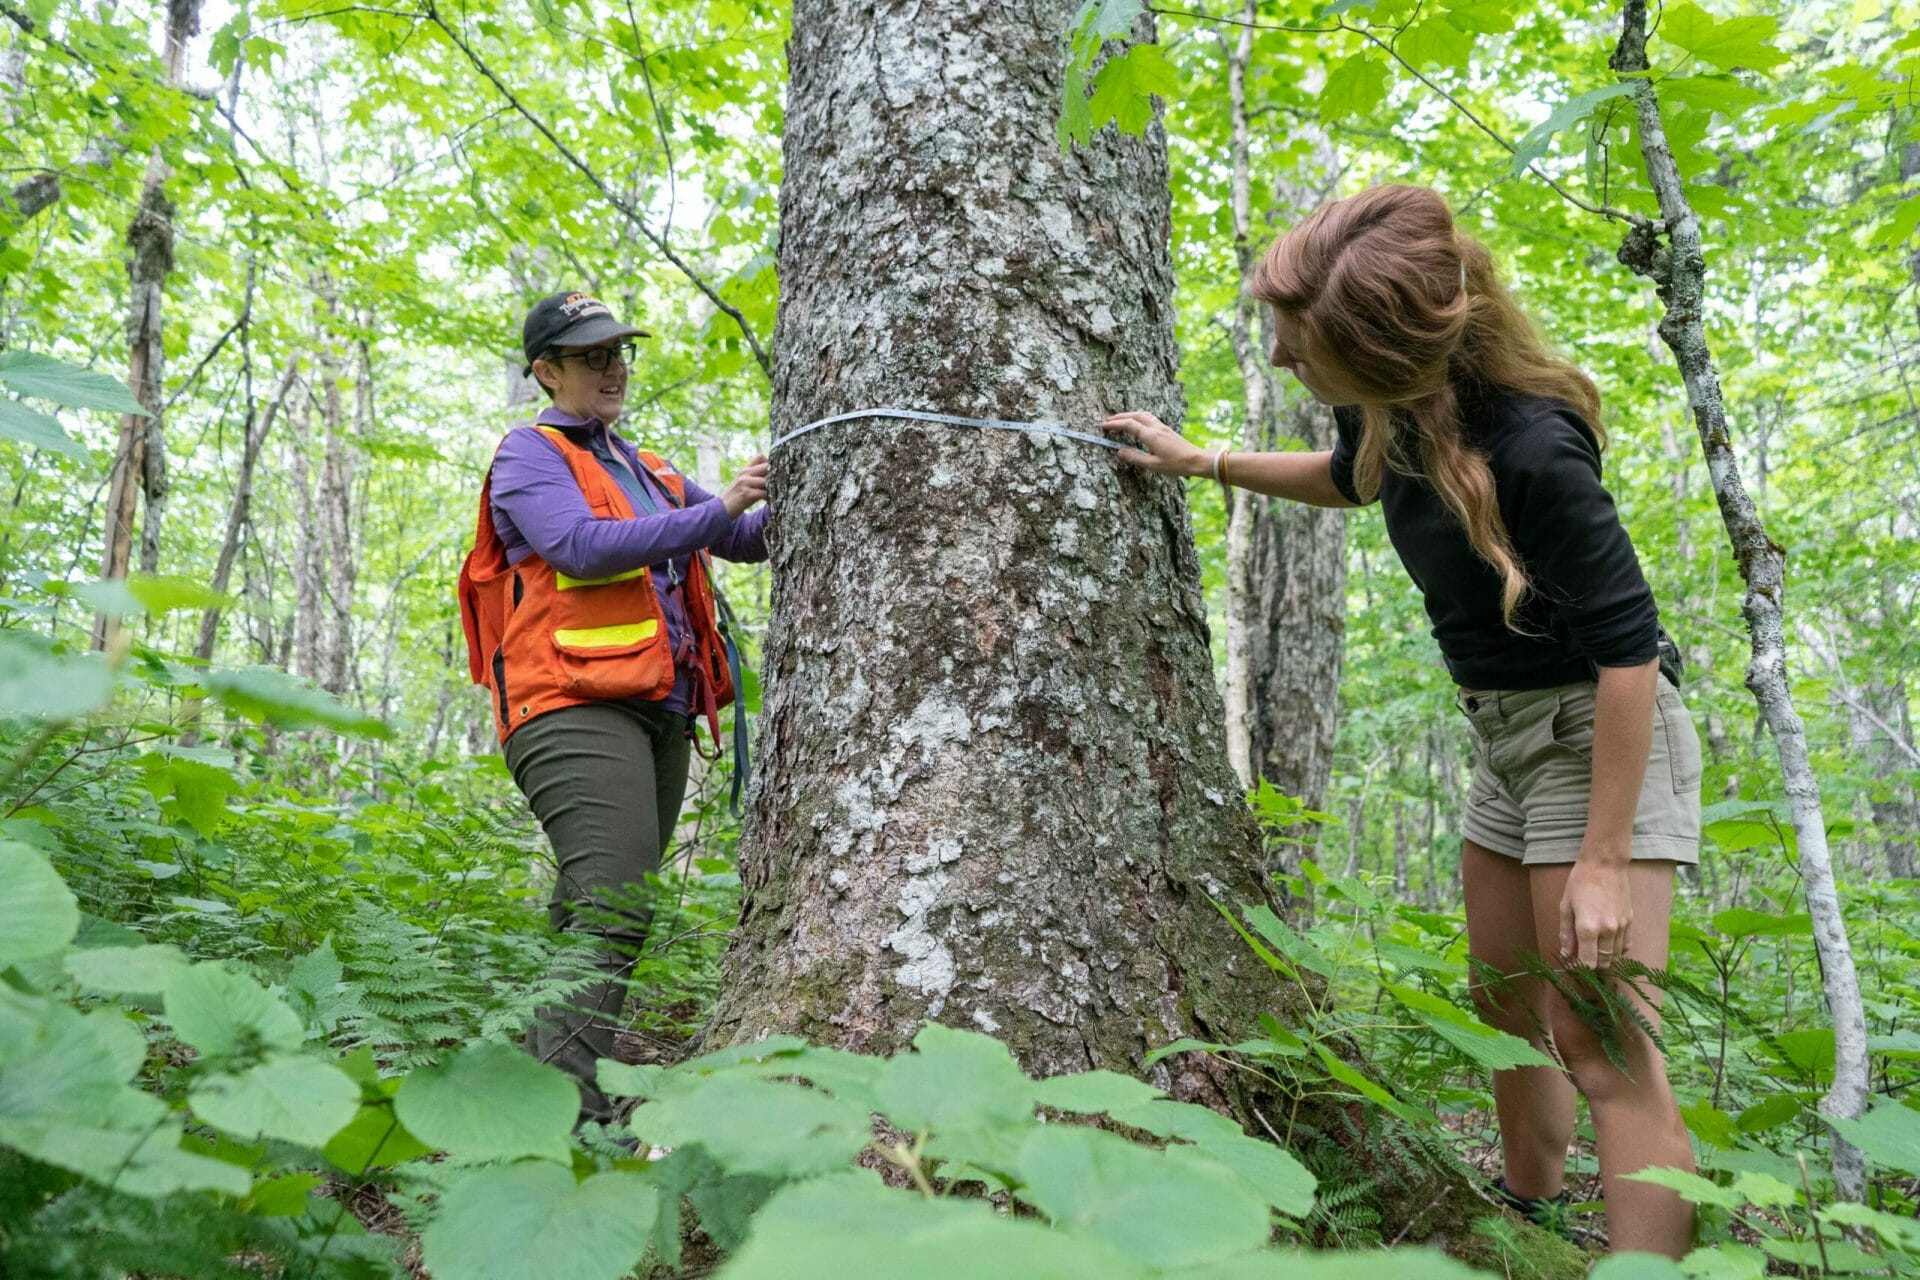 Two women measuring the width of a large tree trunk.